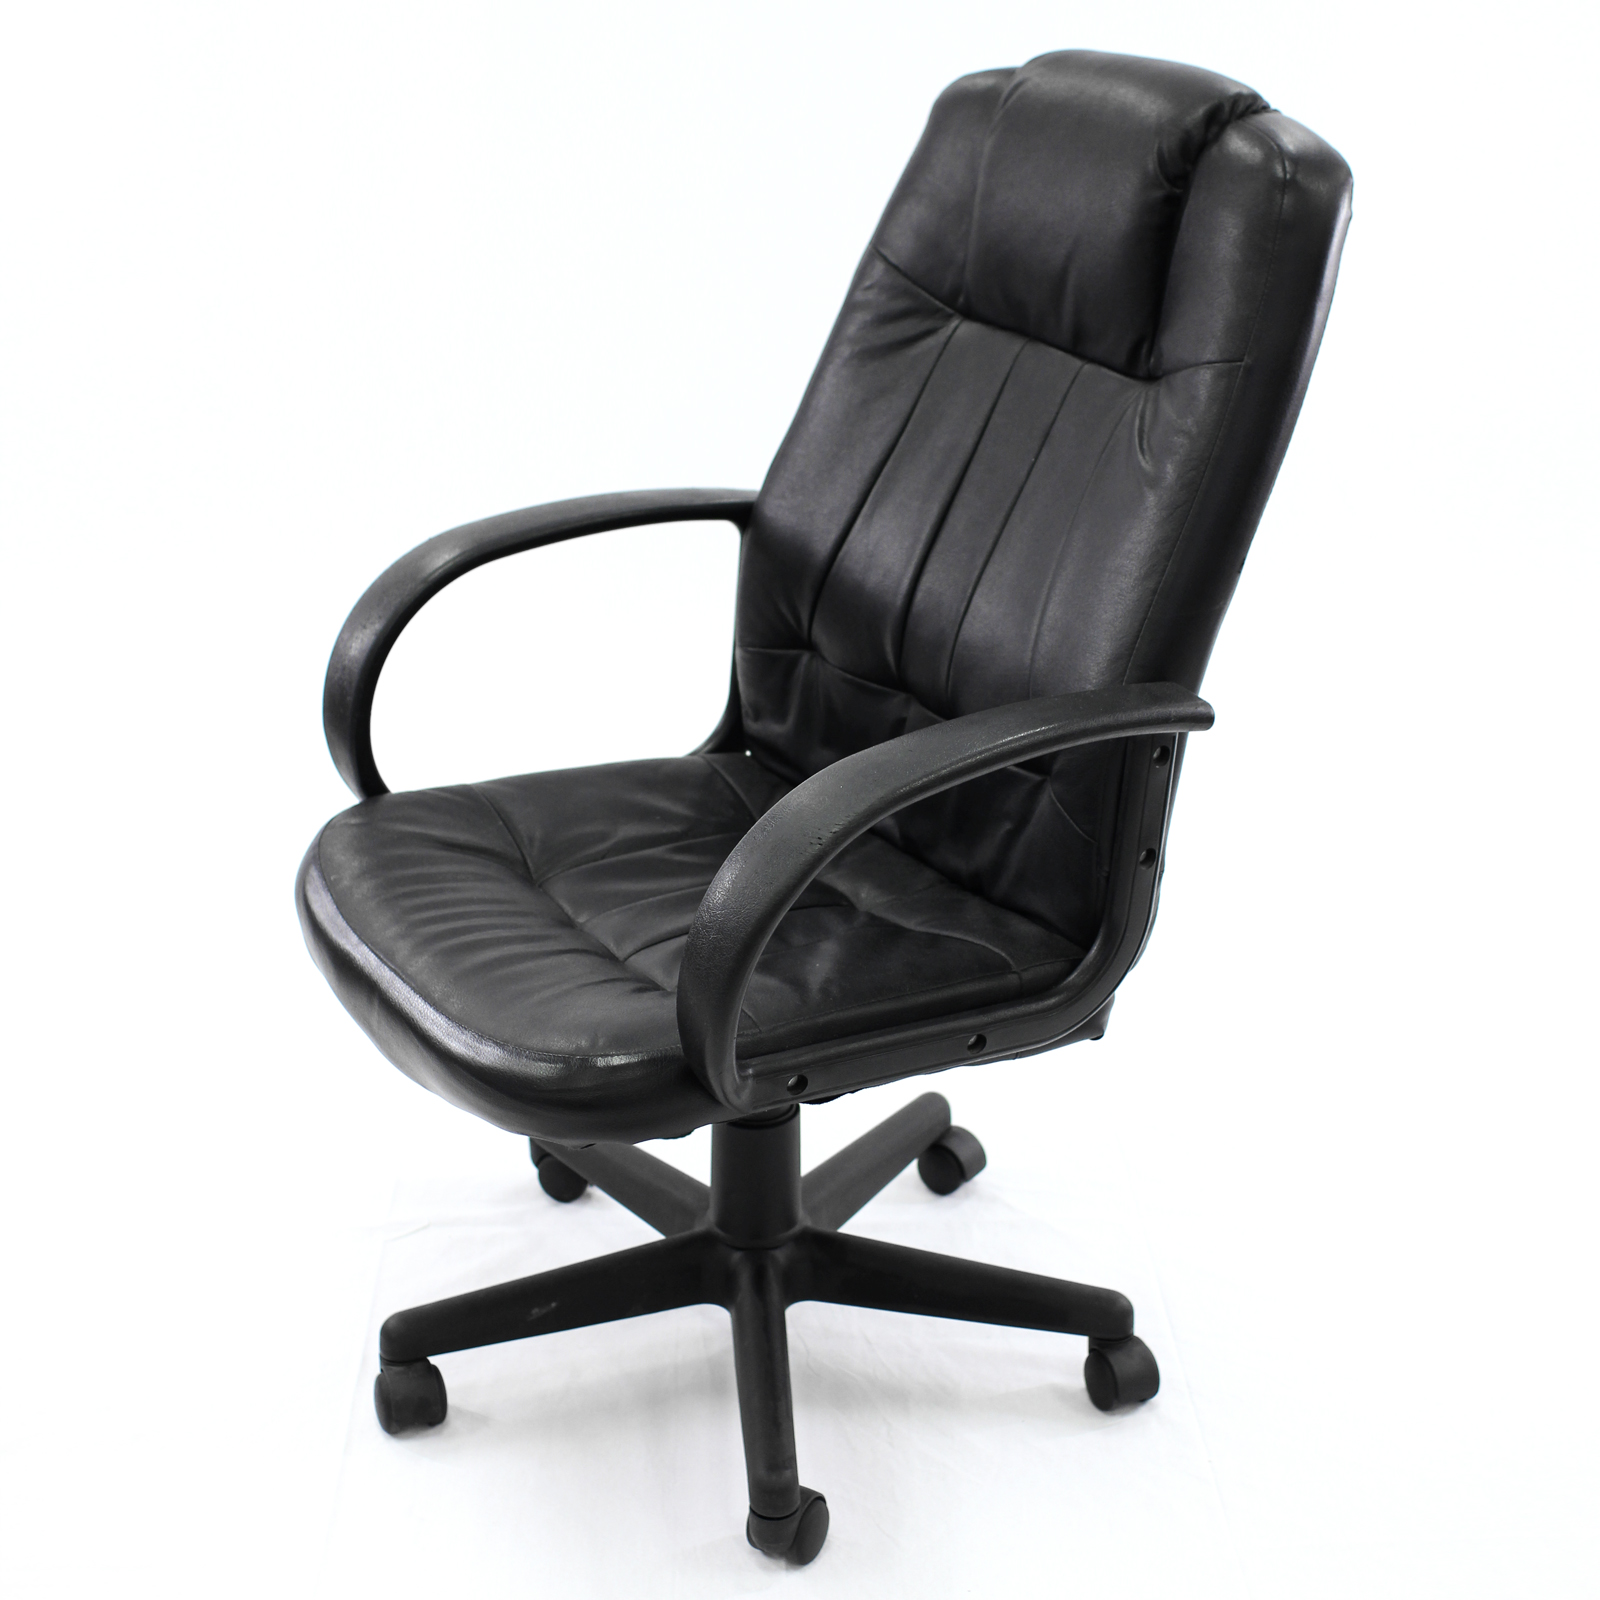 Executive Leather Chair American Party RentalAmerican Party Rental